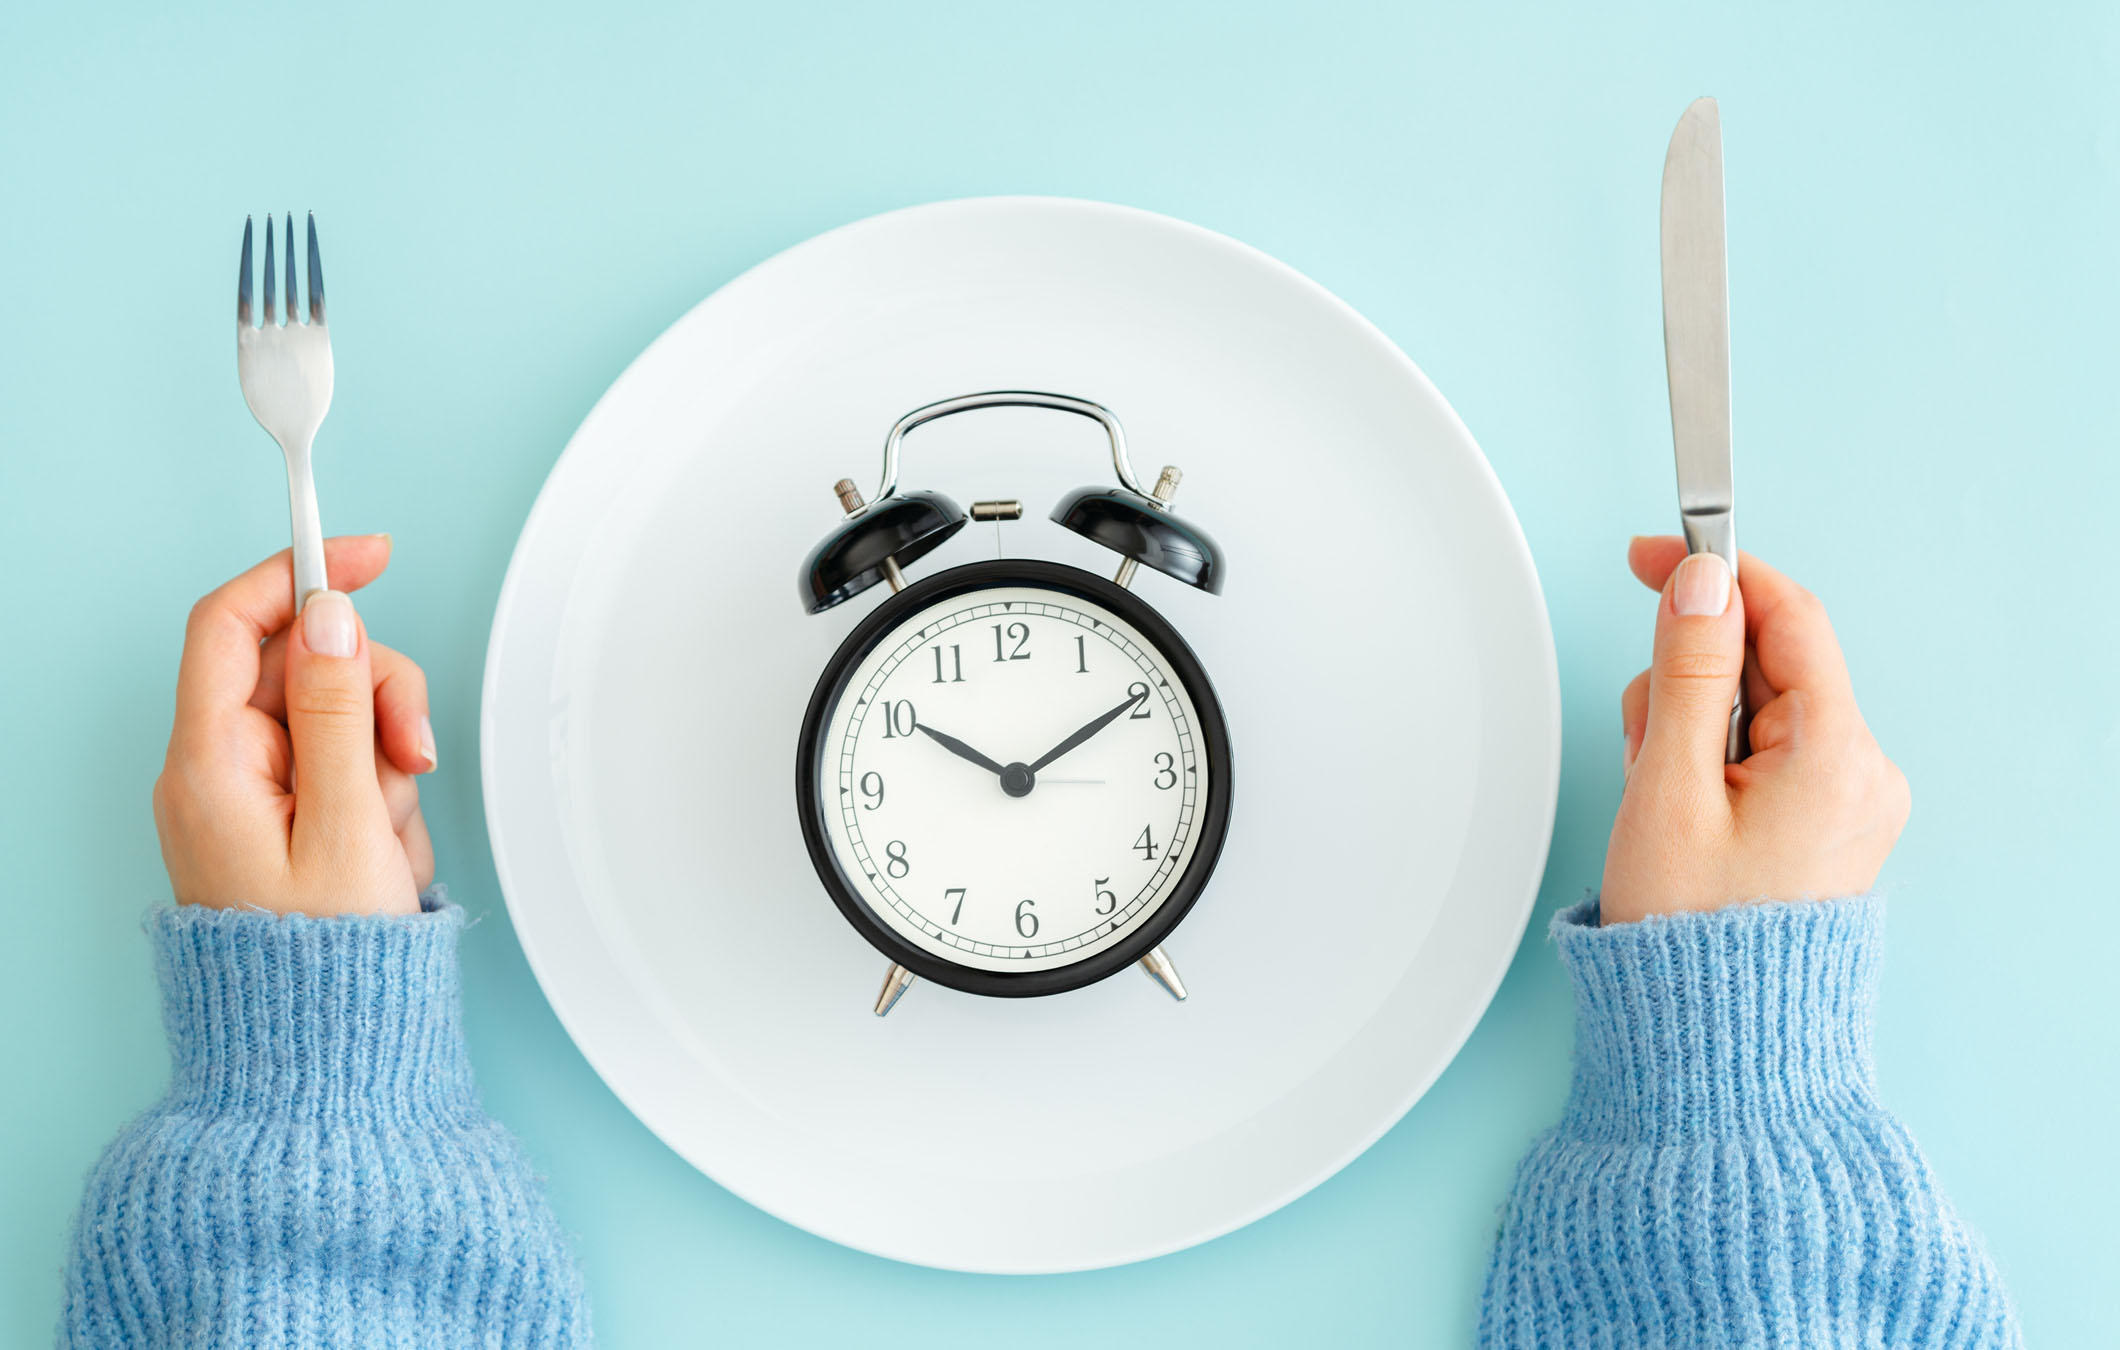 How To Ease Into Intermittent Fasting